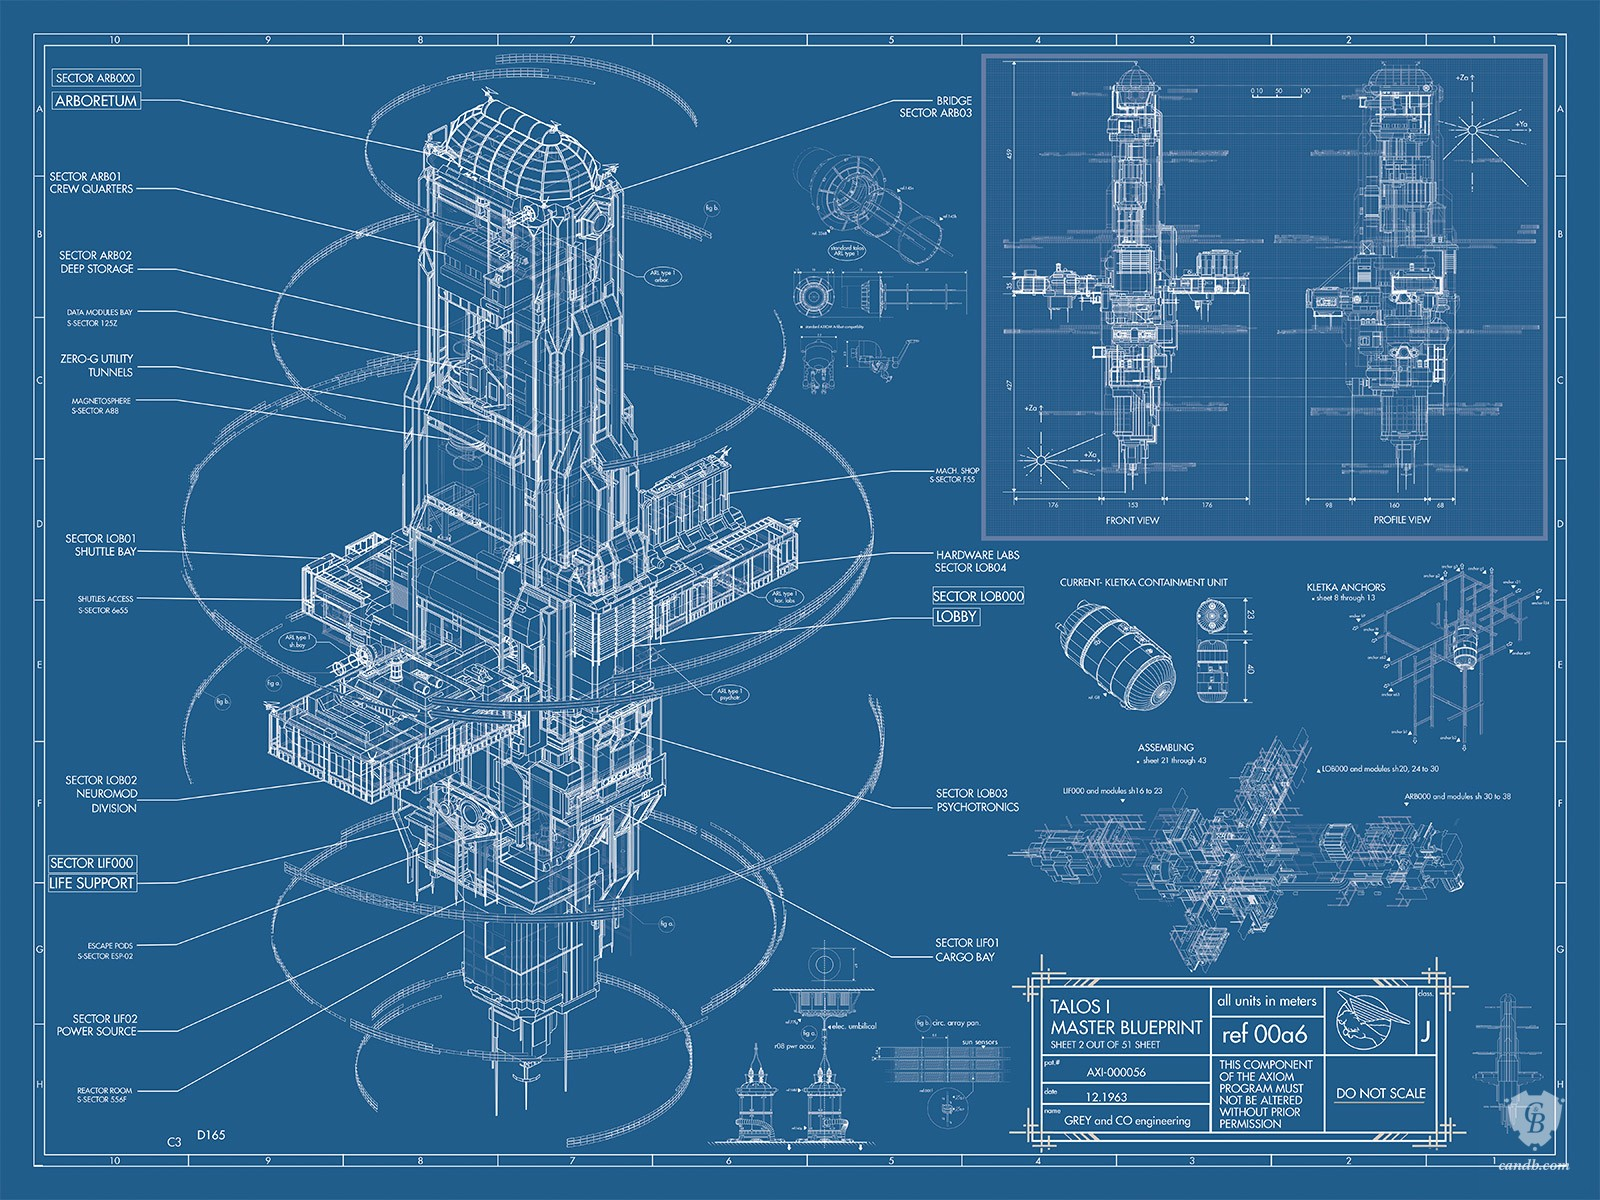 Artwork Talos I Master Blueprint - Prey Arkane Studios